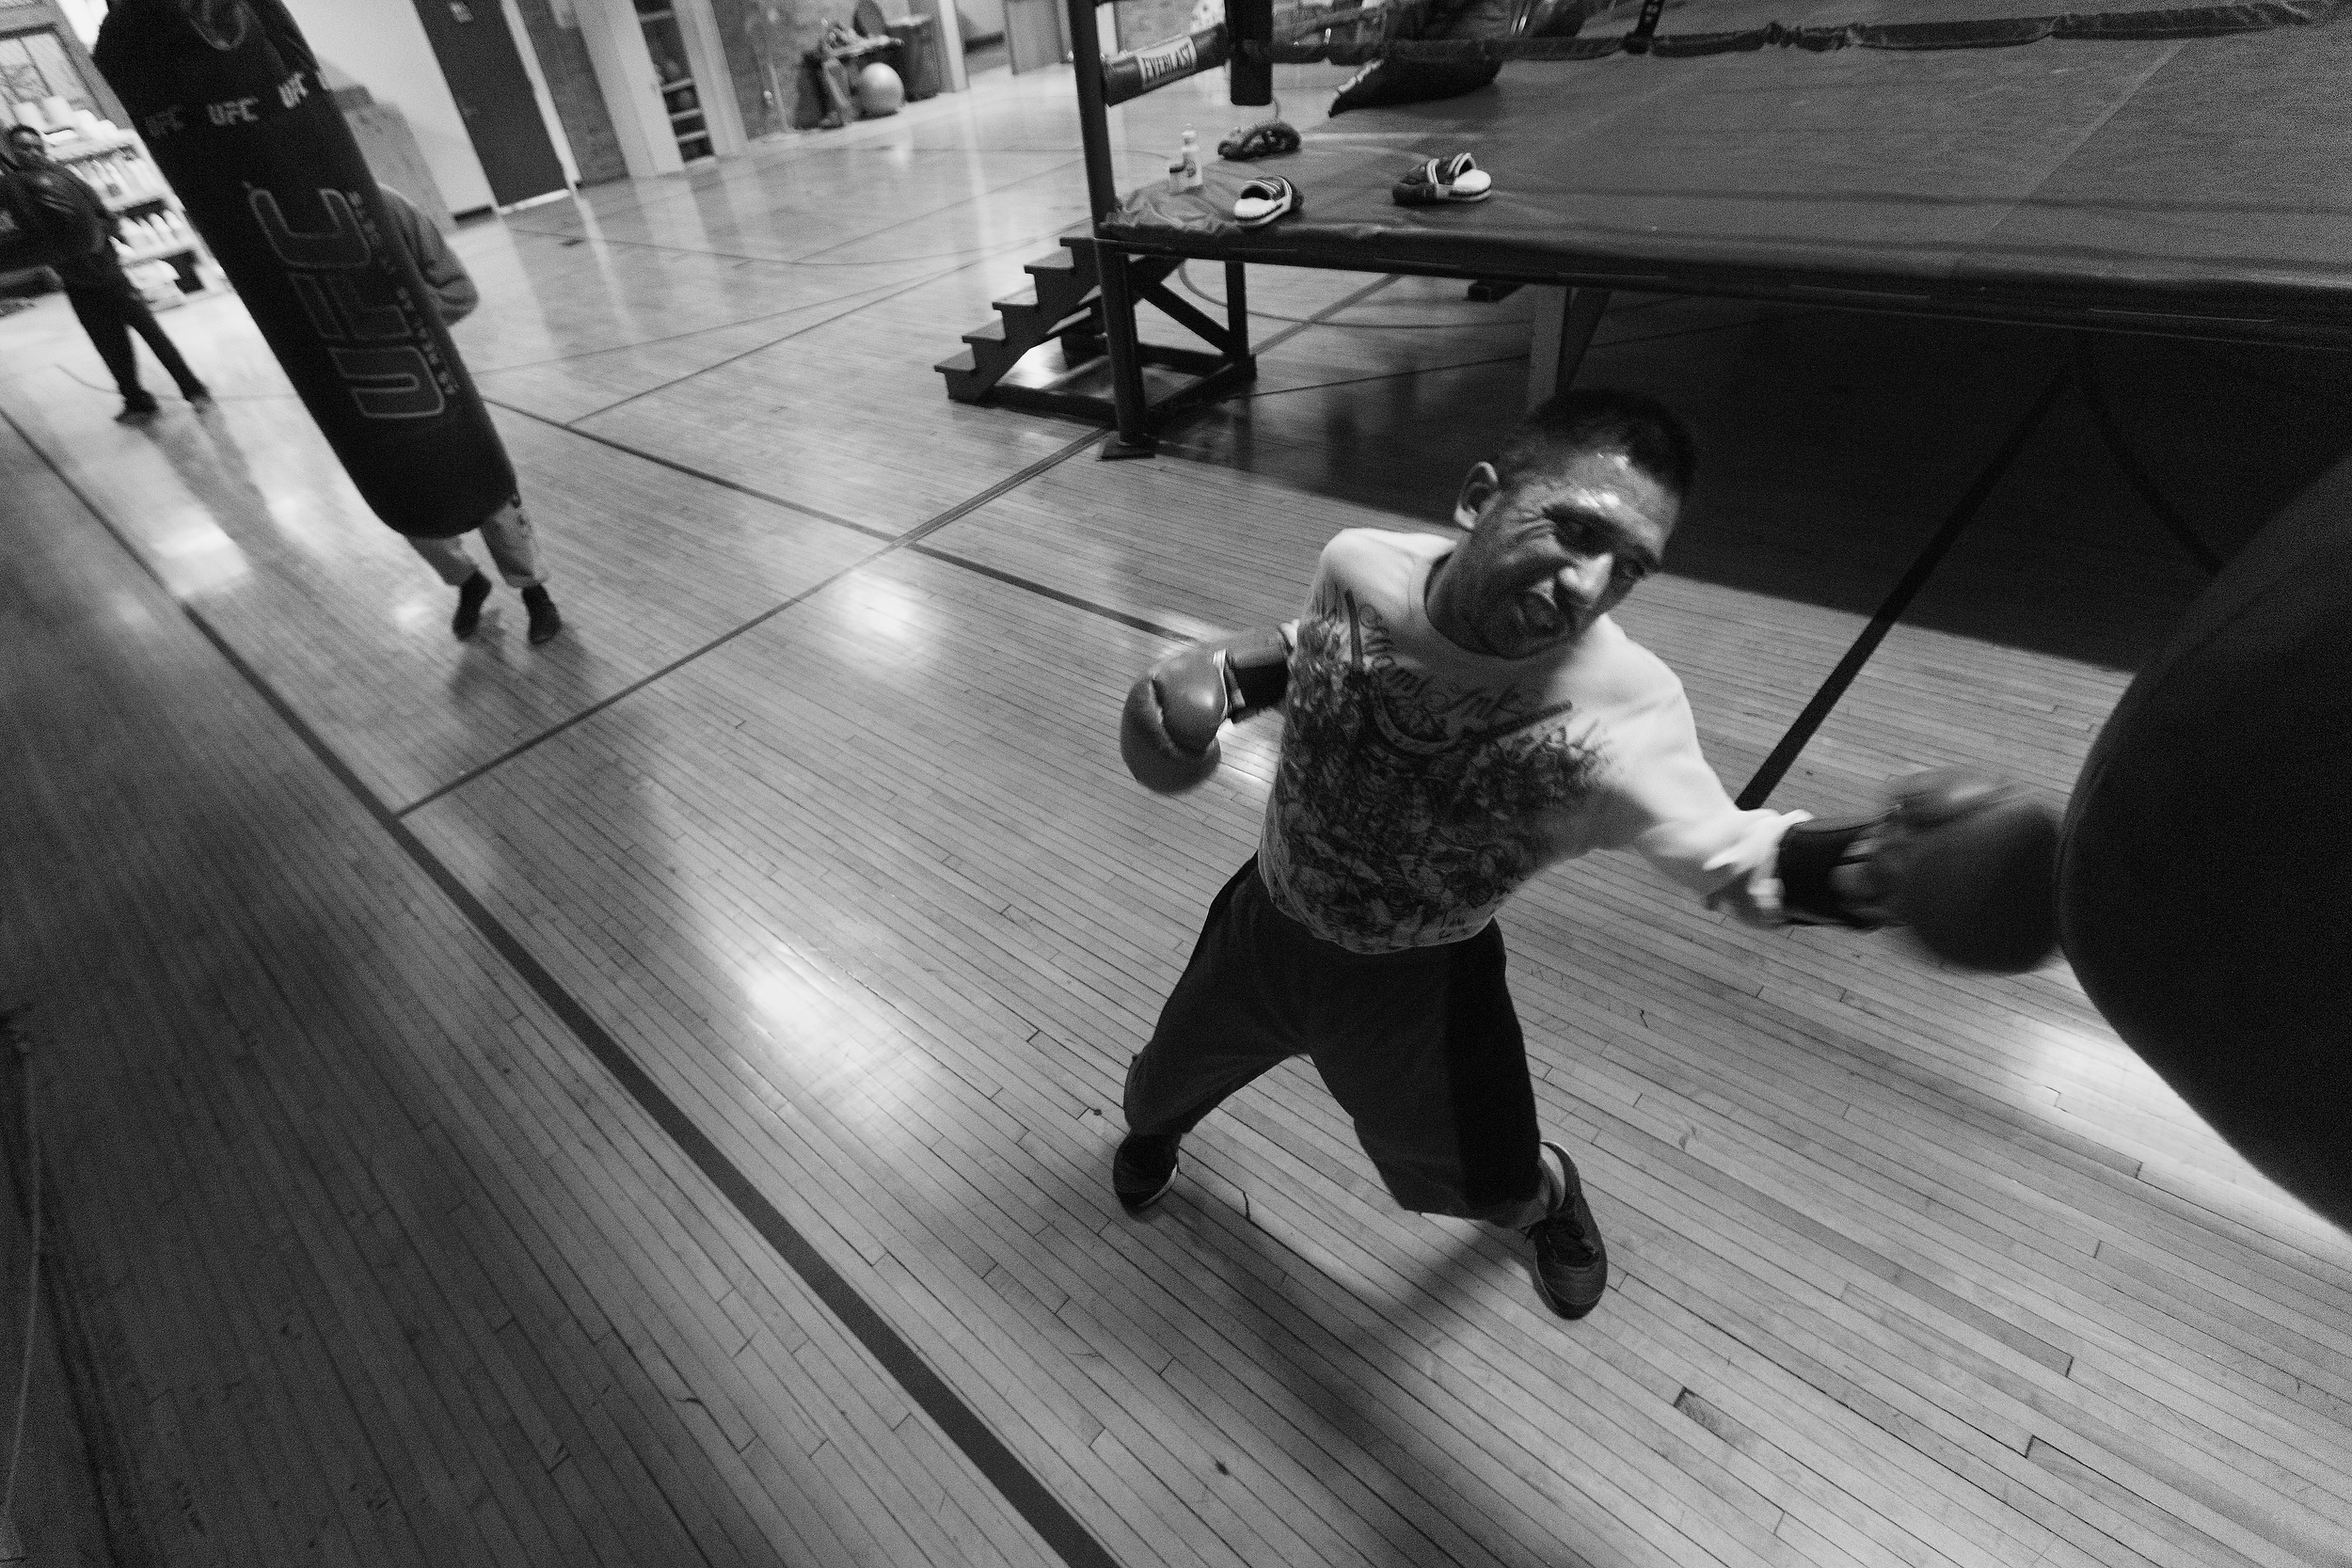 Santiago �Santos� Garcia hits a punching bag during boxing practice at Eastside Boxing Club in Kalamazoo, Mich. on May 17, 2016. Garcia won the Michigan Golden Glove novice class state championship at the 108 pound weight class in 2015 and 2016. (Bryan Bennett | MLive.com)